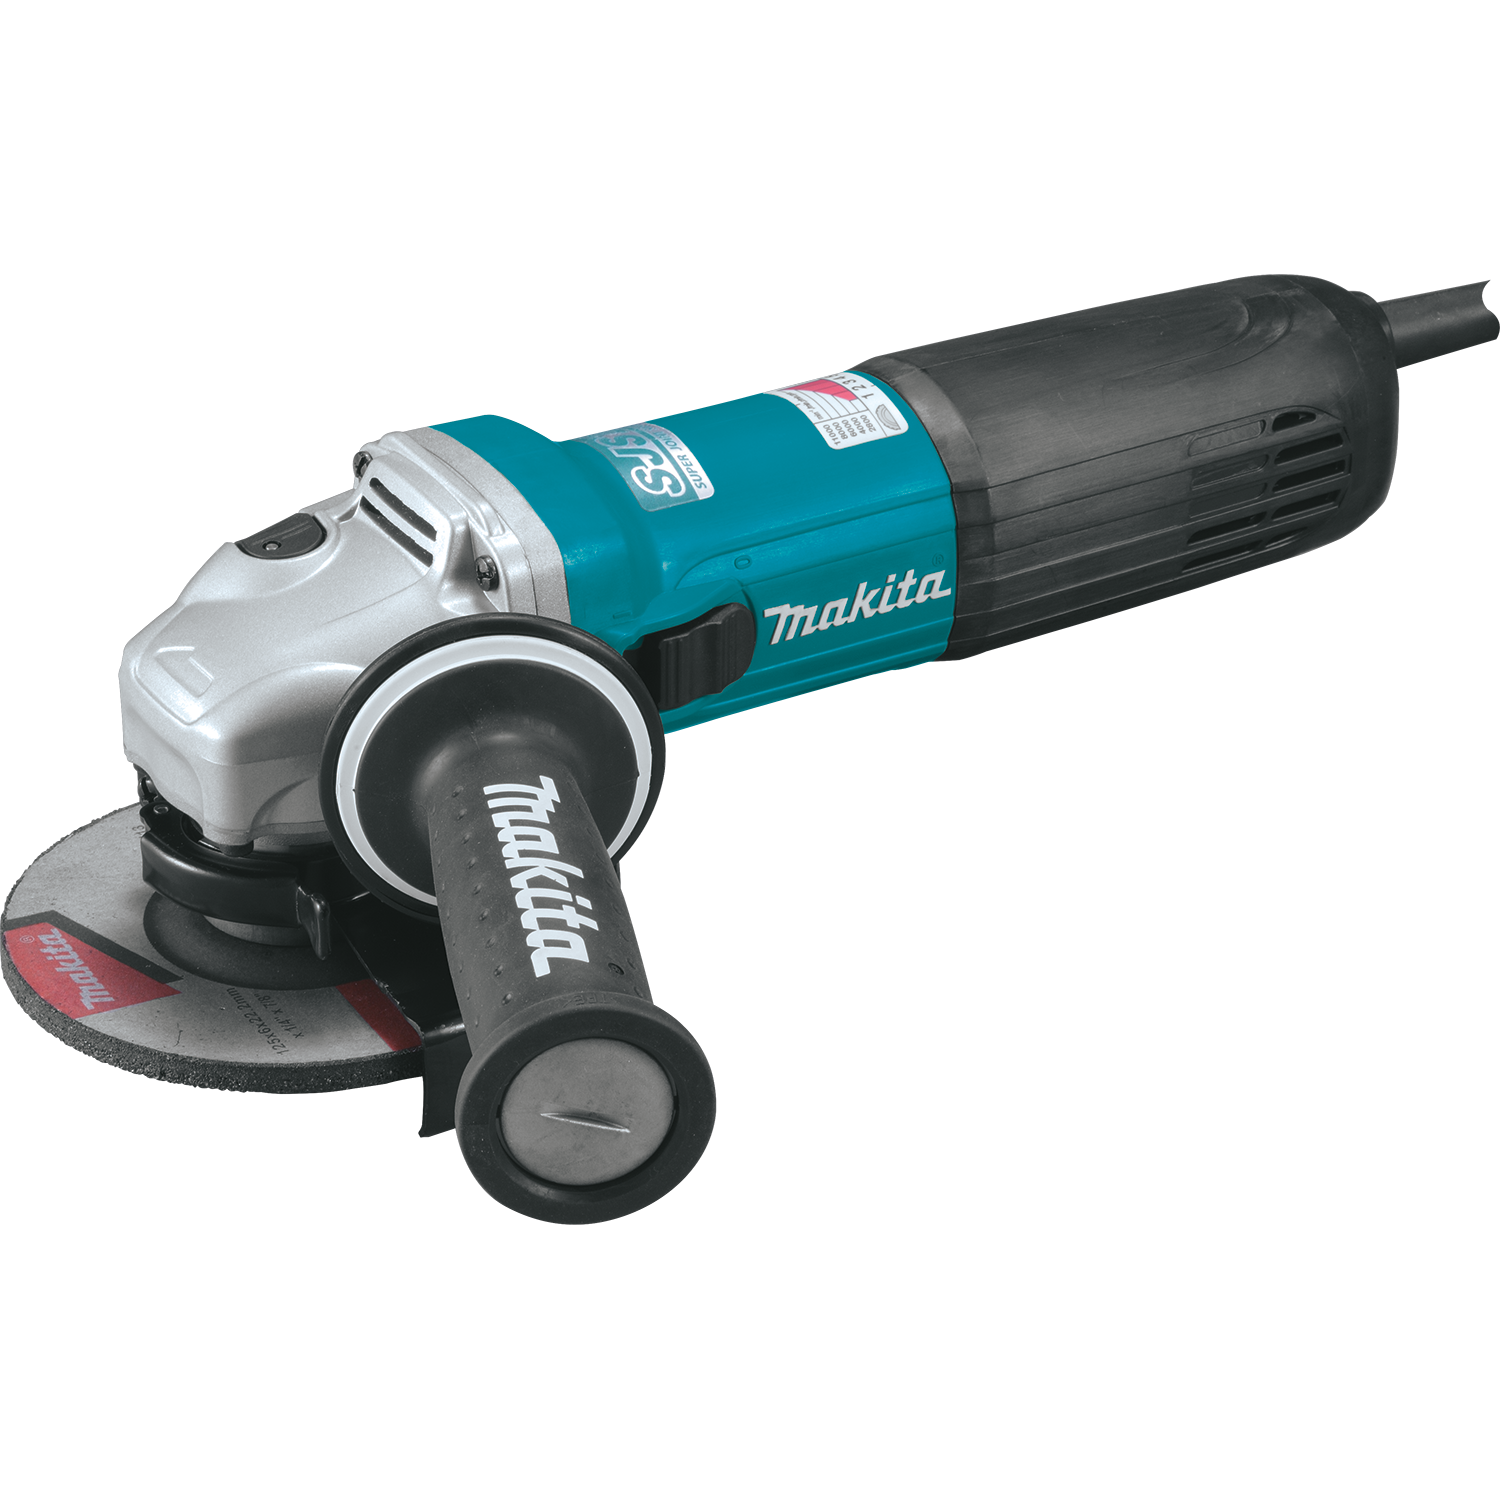 Makita USA - Product Details -GA5042C on